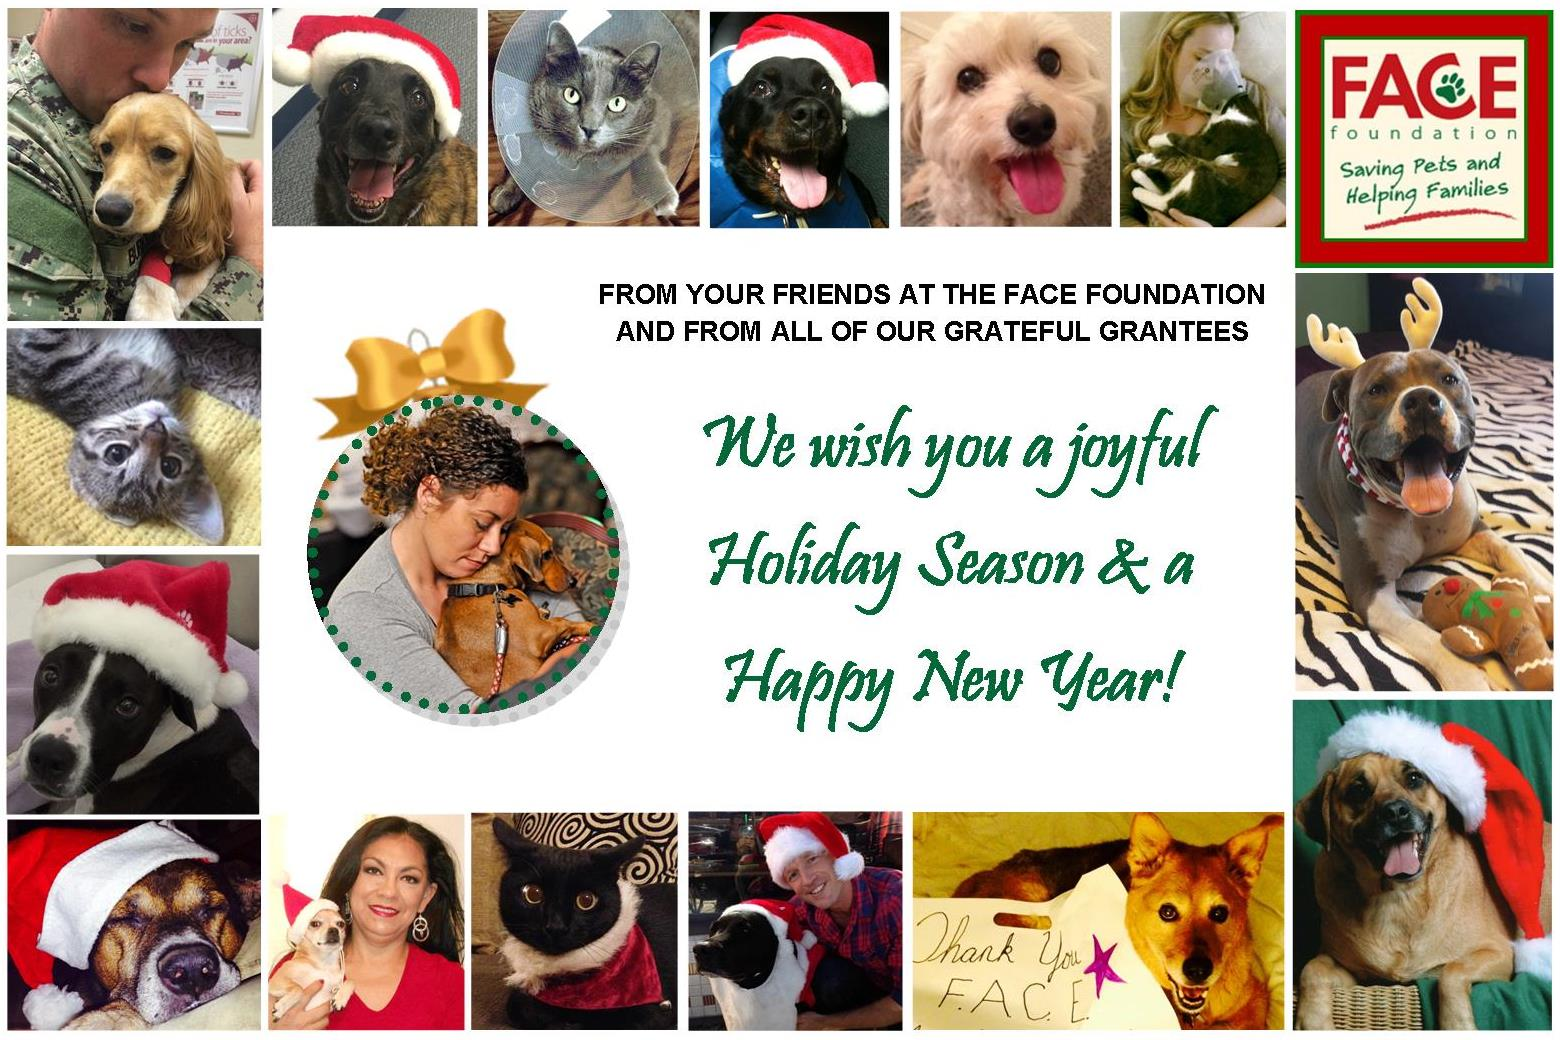 2014 Holiday Constant Contact.jpg